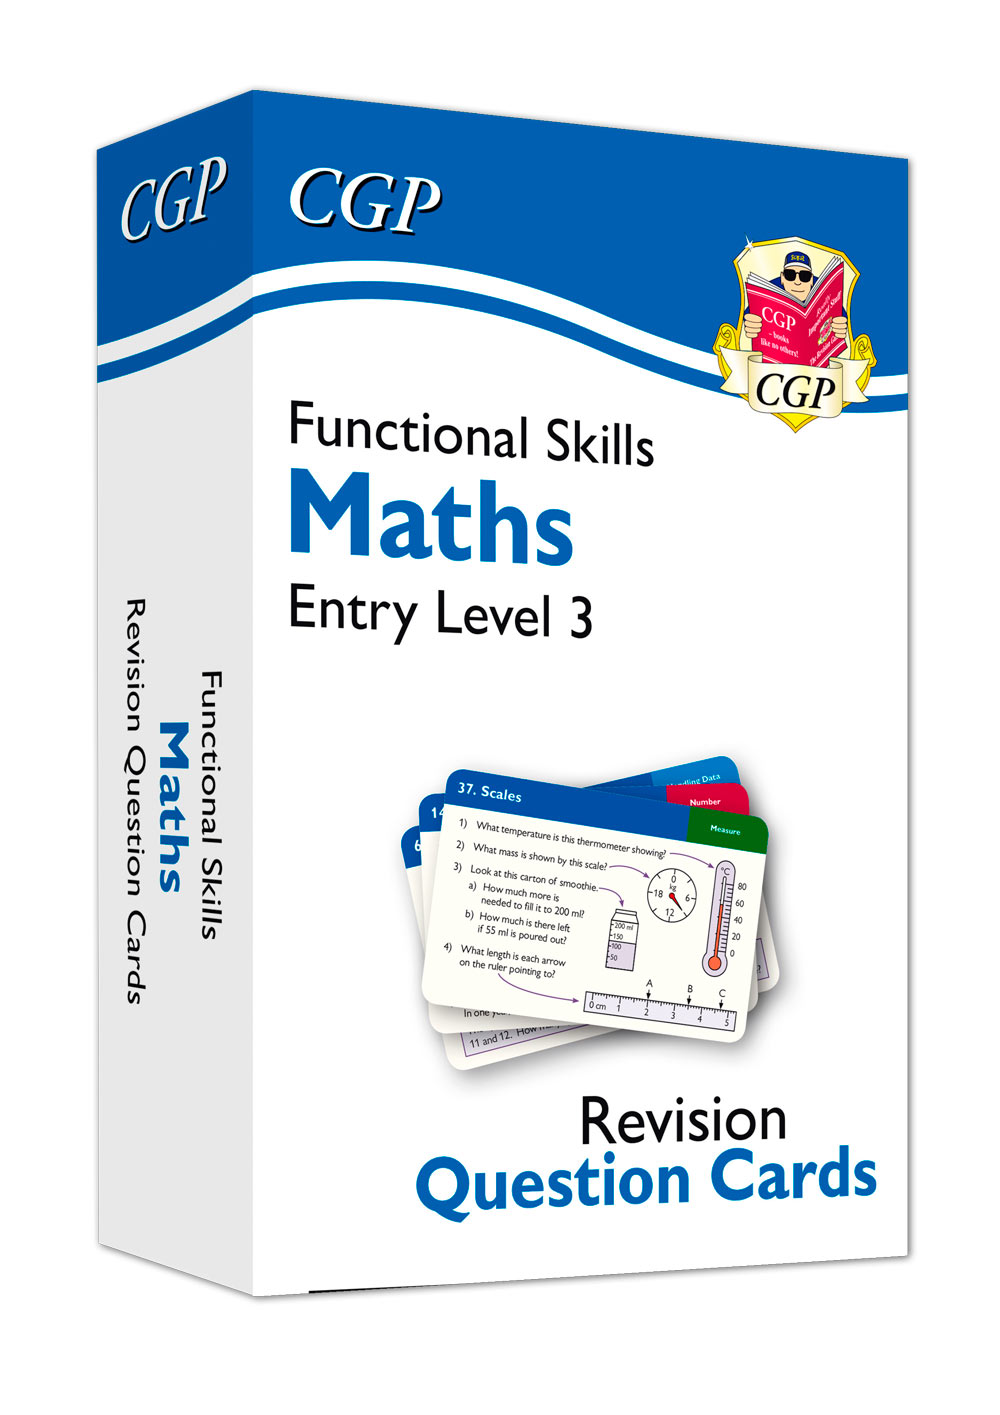 M3NFA1 - New Functional Skills Maths Revision Question Cards - Entry Level 3